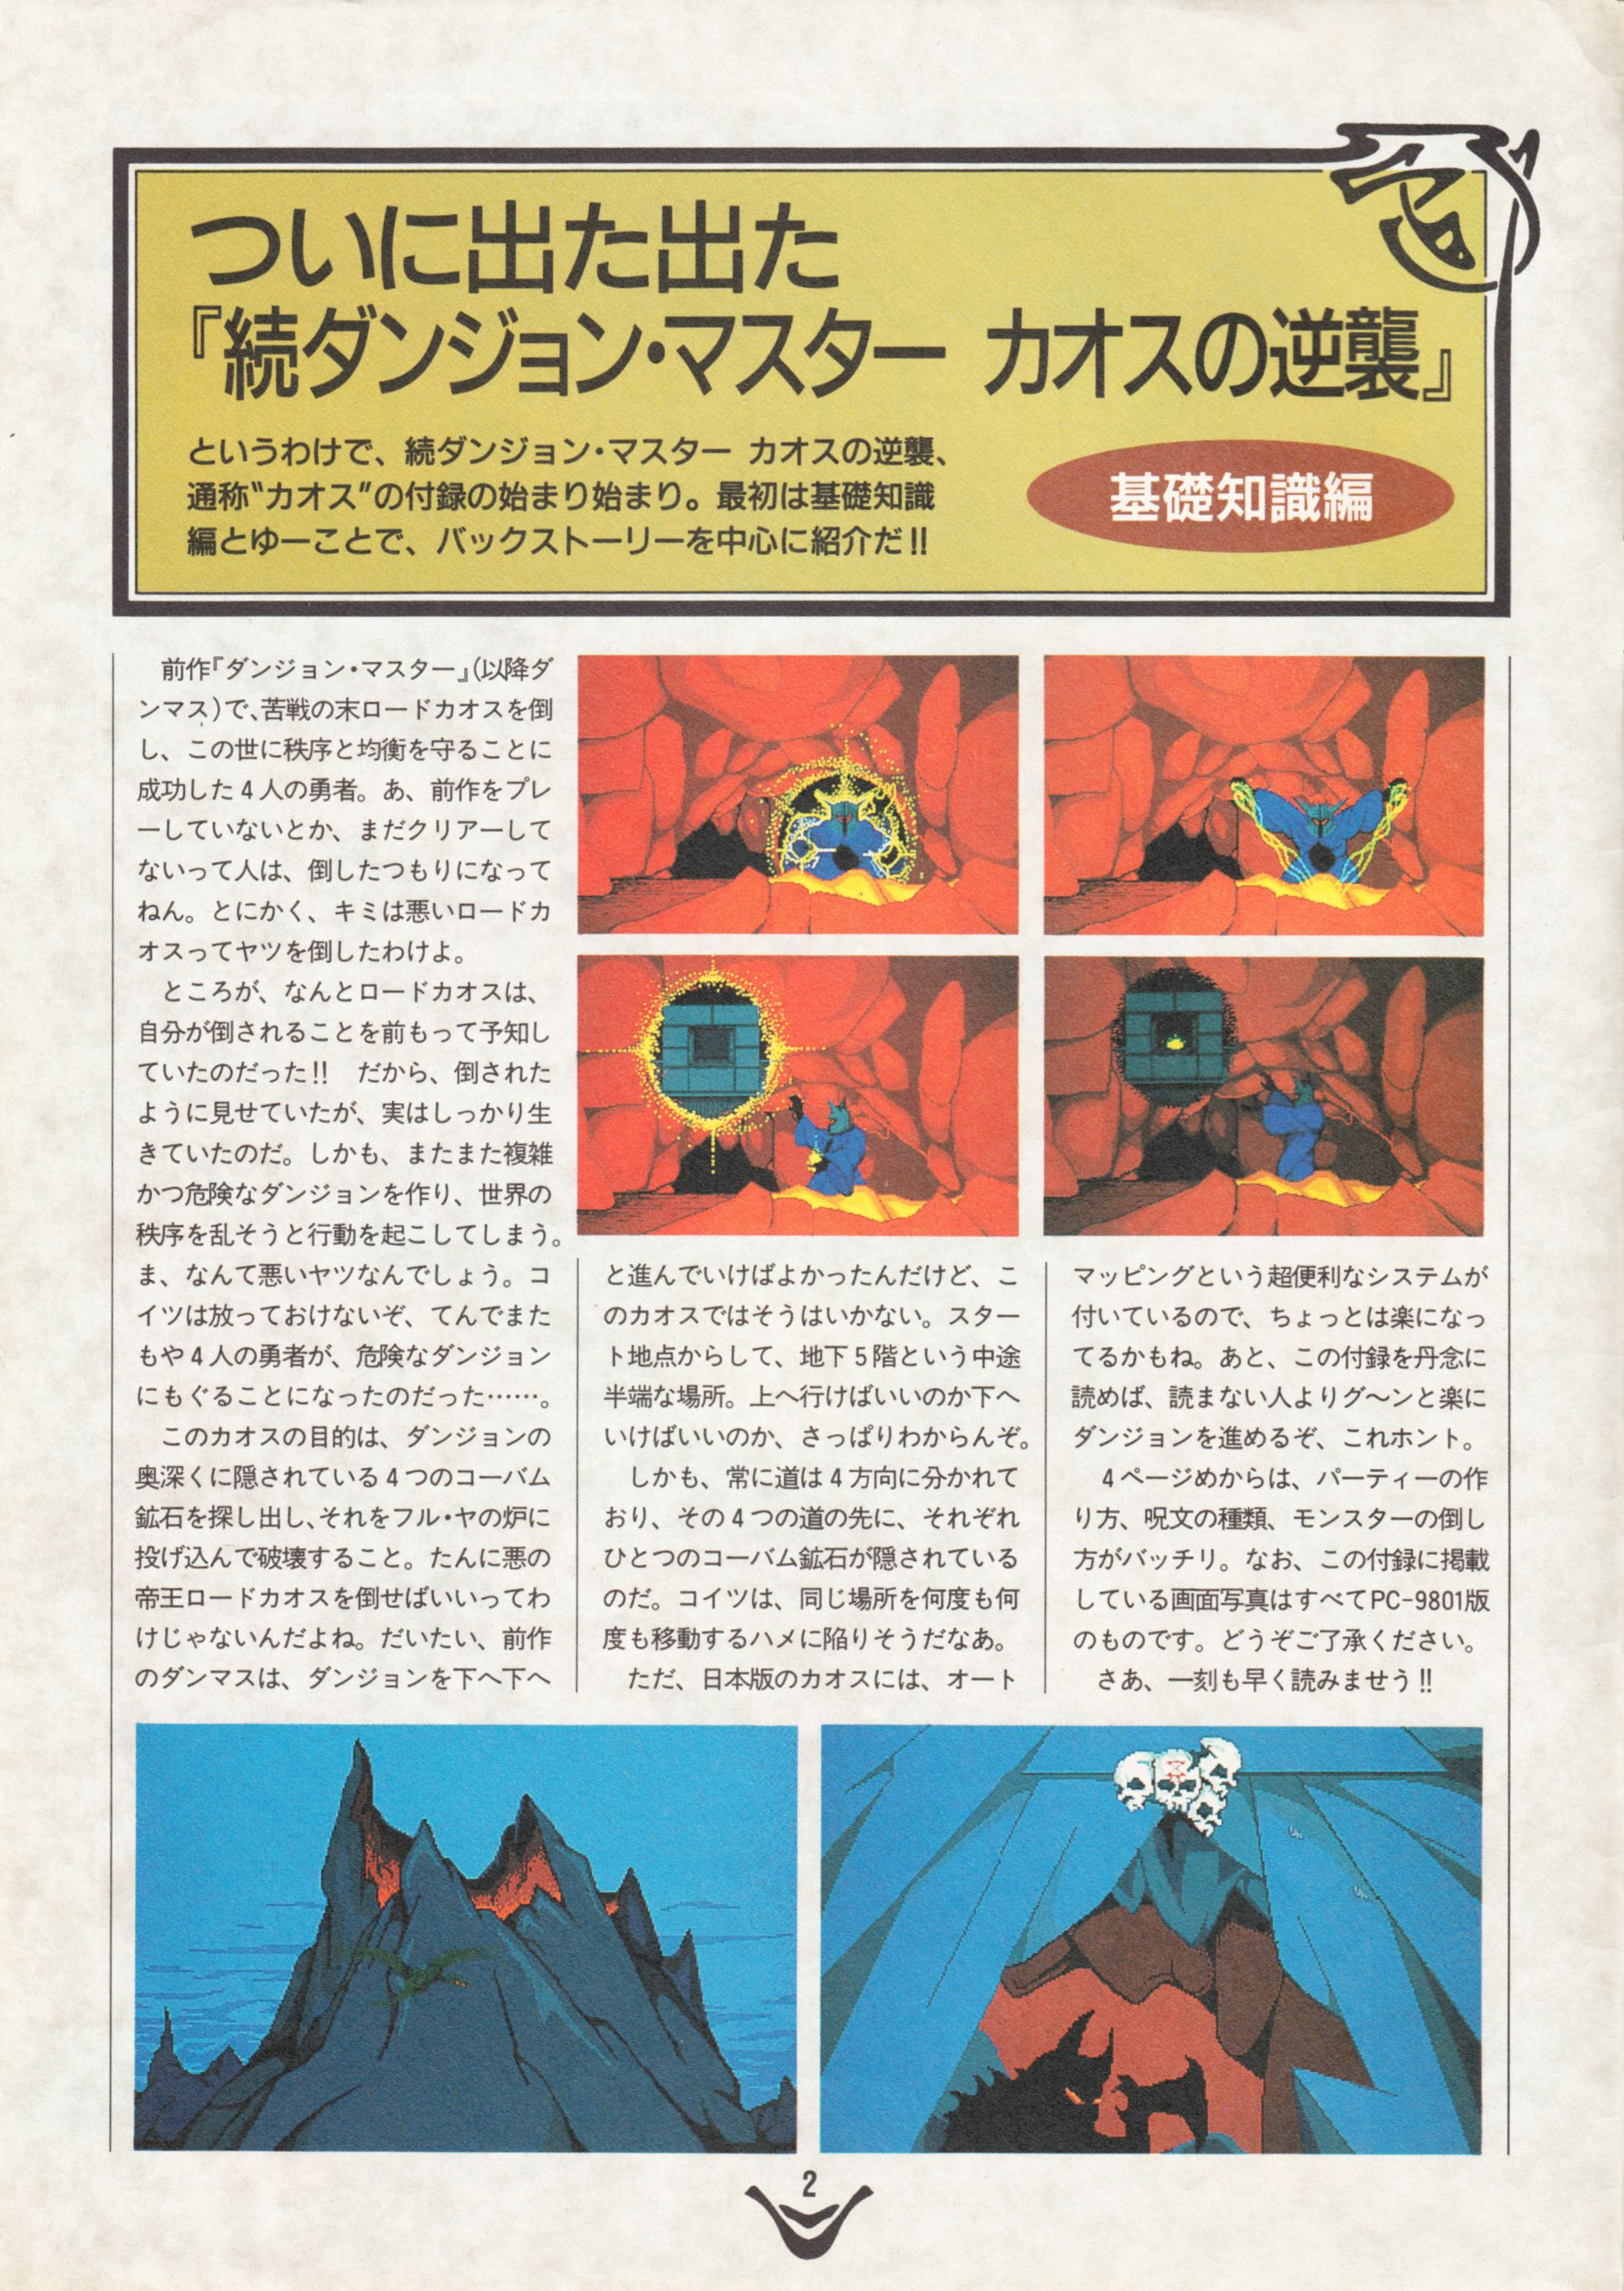 Special Supplement 1 - Chaos Strikes Back Guide published in Japanese magazine 'Login', Vol 9 No 24 21 December 1990, Page 2